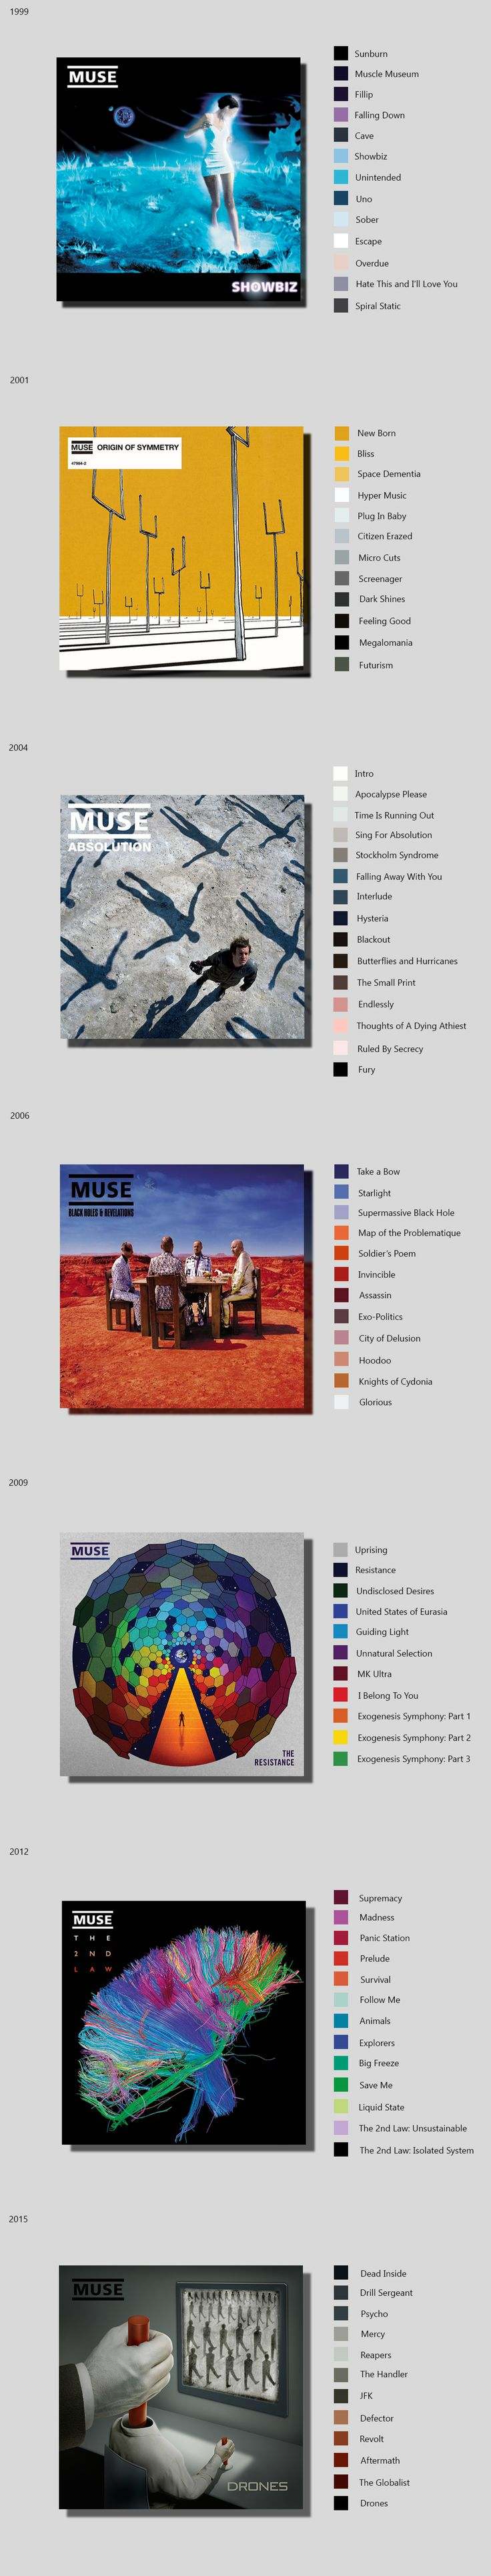 Muse Discography, 1999-2015